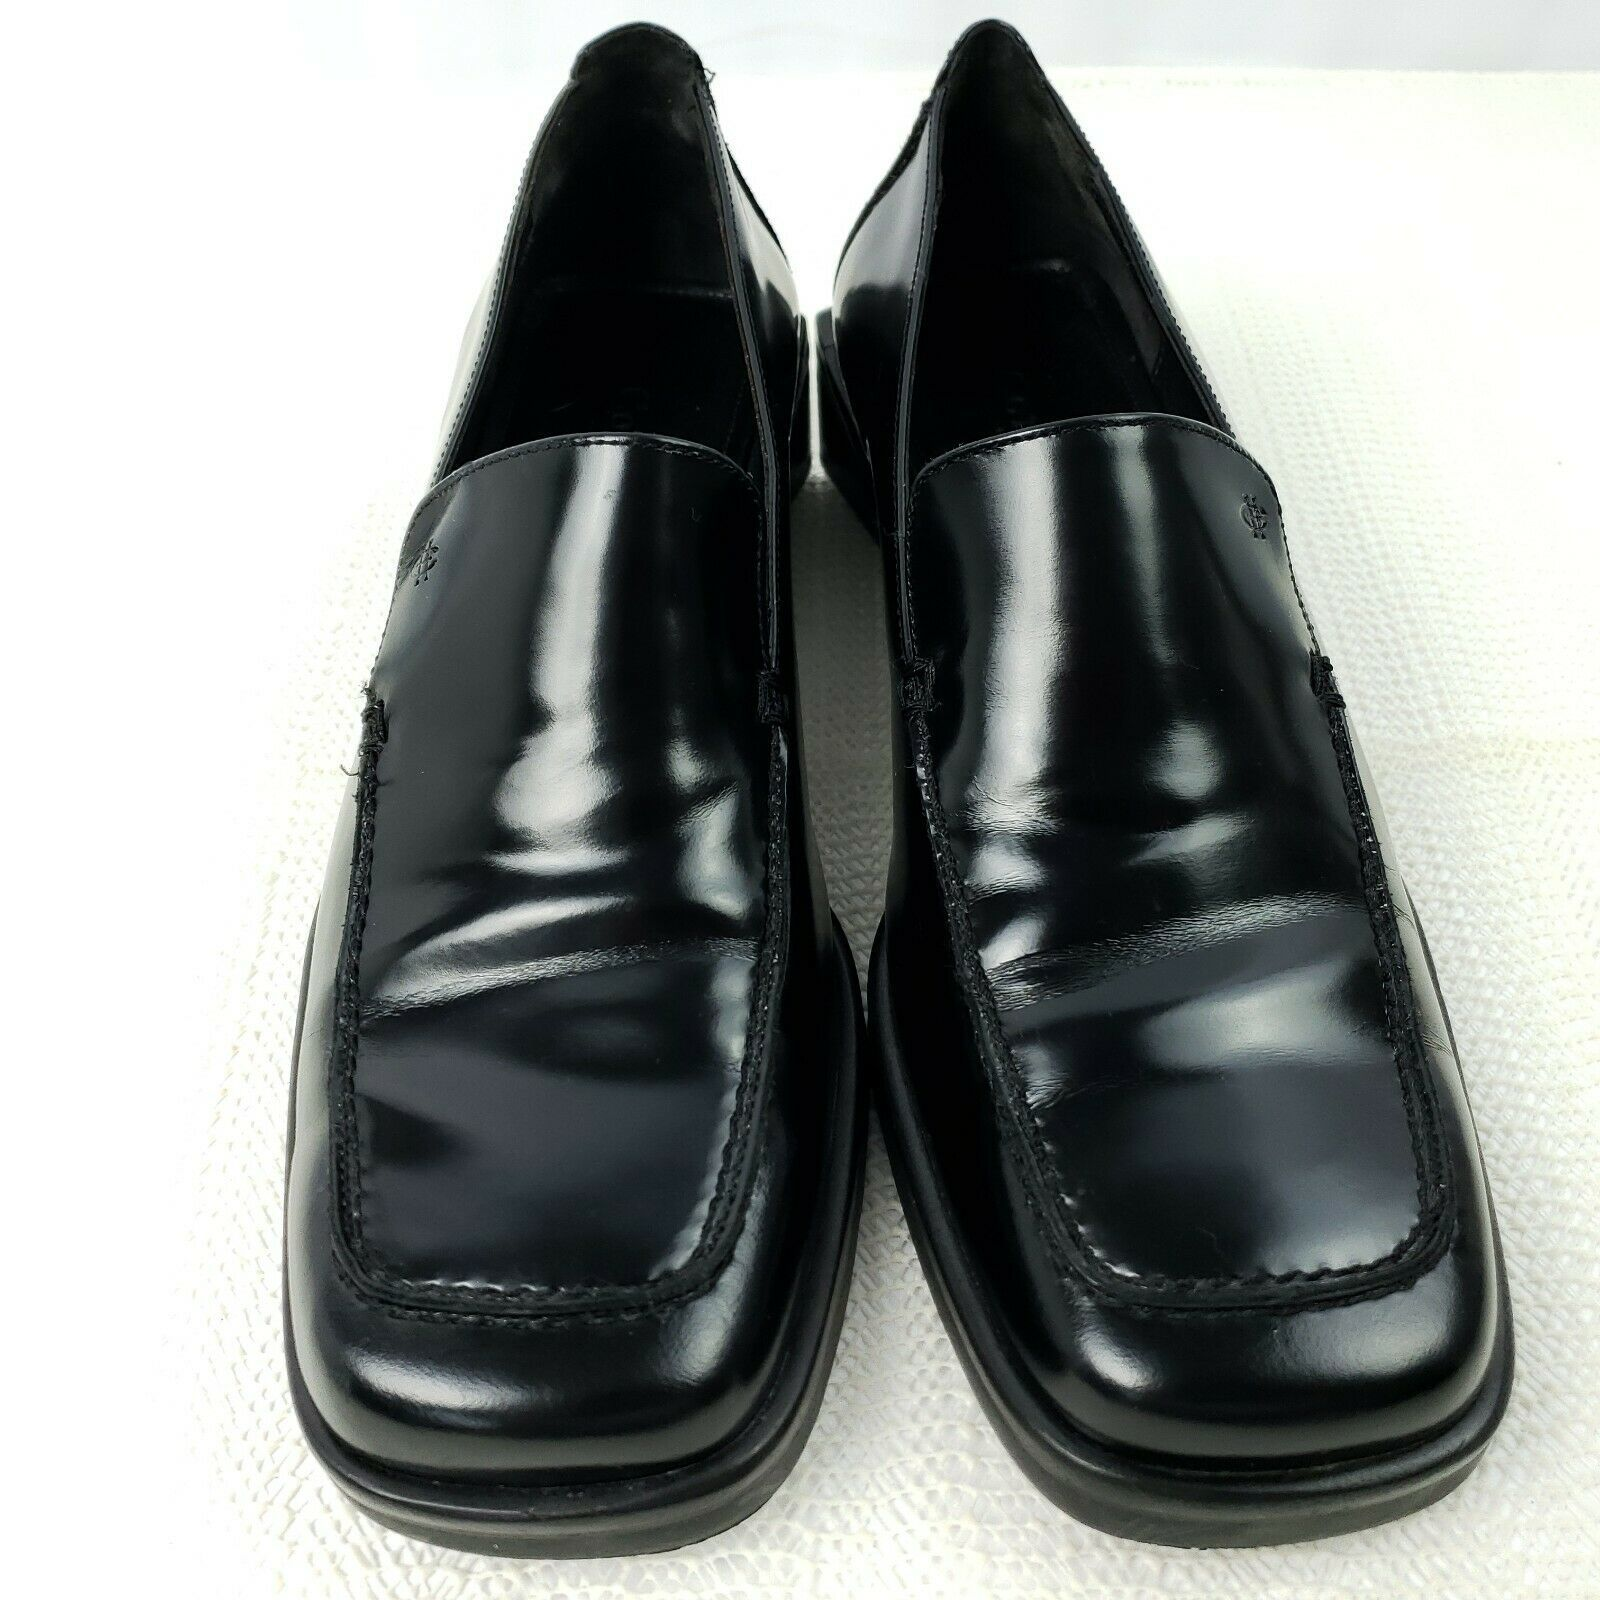 Primary image for Cole Haan Womens Loafers 6.5 B Black Patent Leather Shoes D11180 Made in Brazil